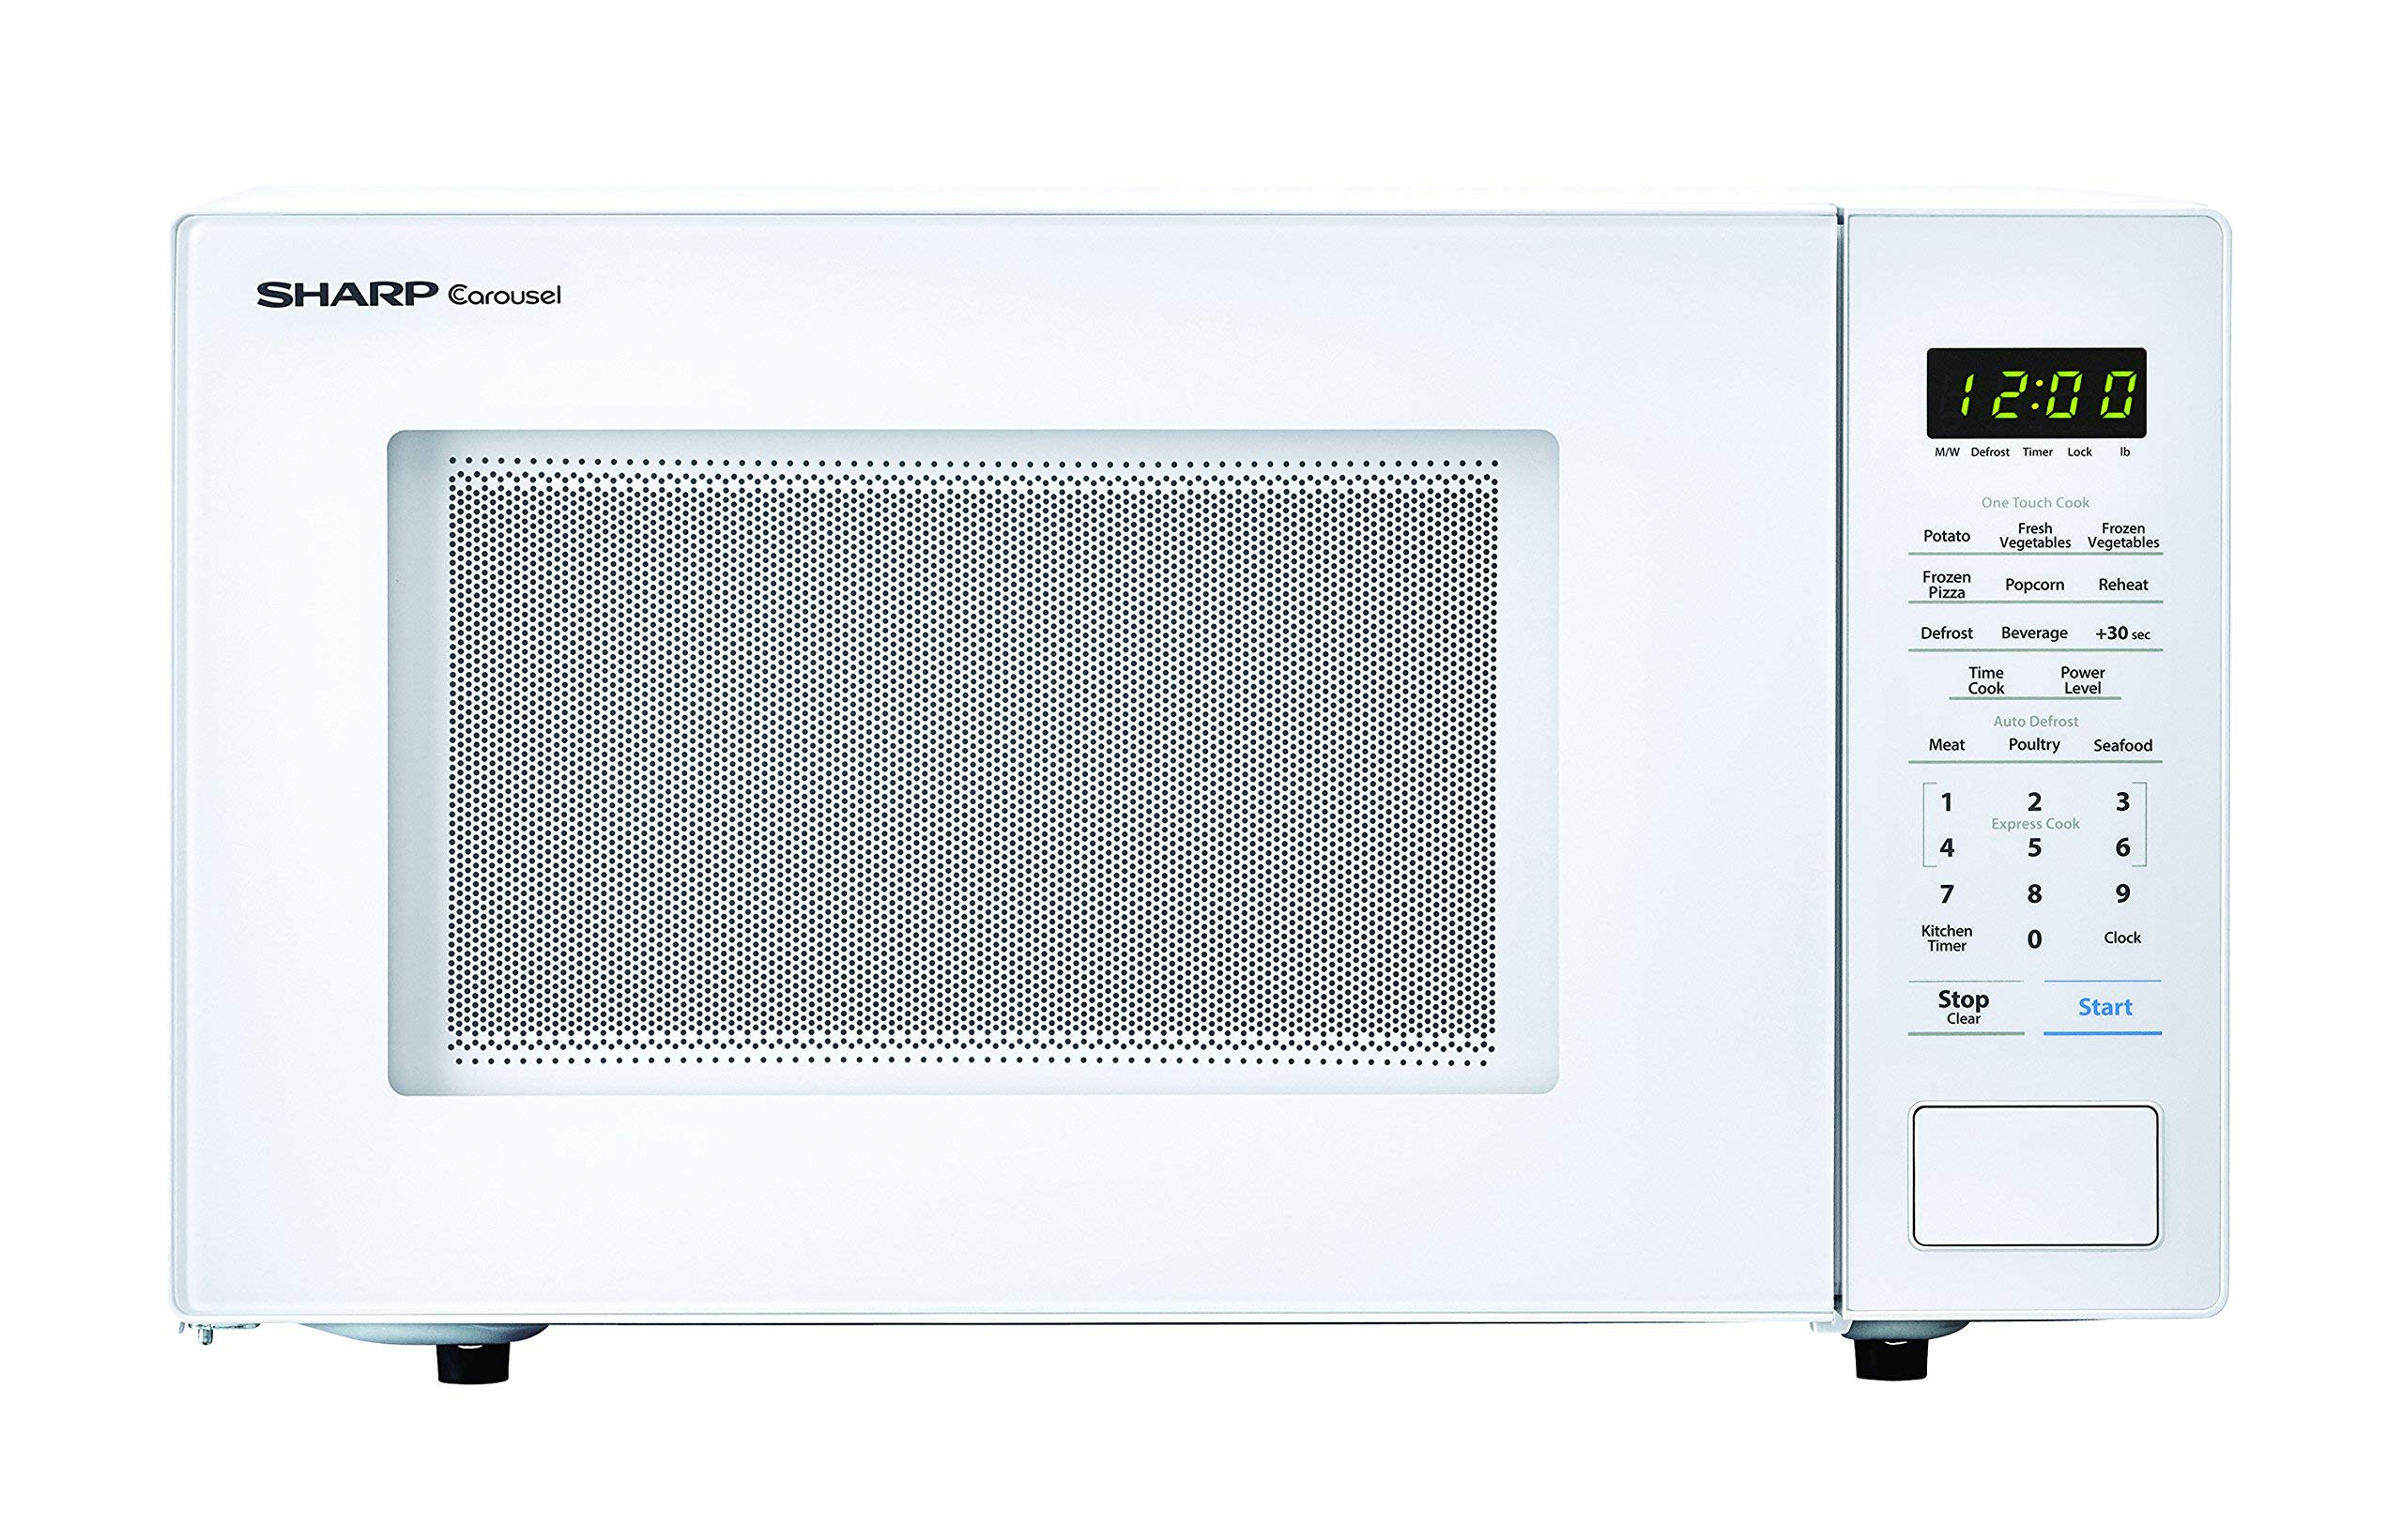 SHARP ZSMC1131CW Carousel 1.1 Cu. Ft. 1000W Countertop Microwave Oven in White (ISTA 6 Packaging), Cubic Foot, 1000 Watts (Renewed)